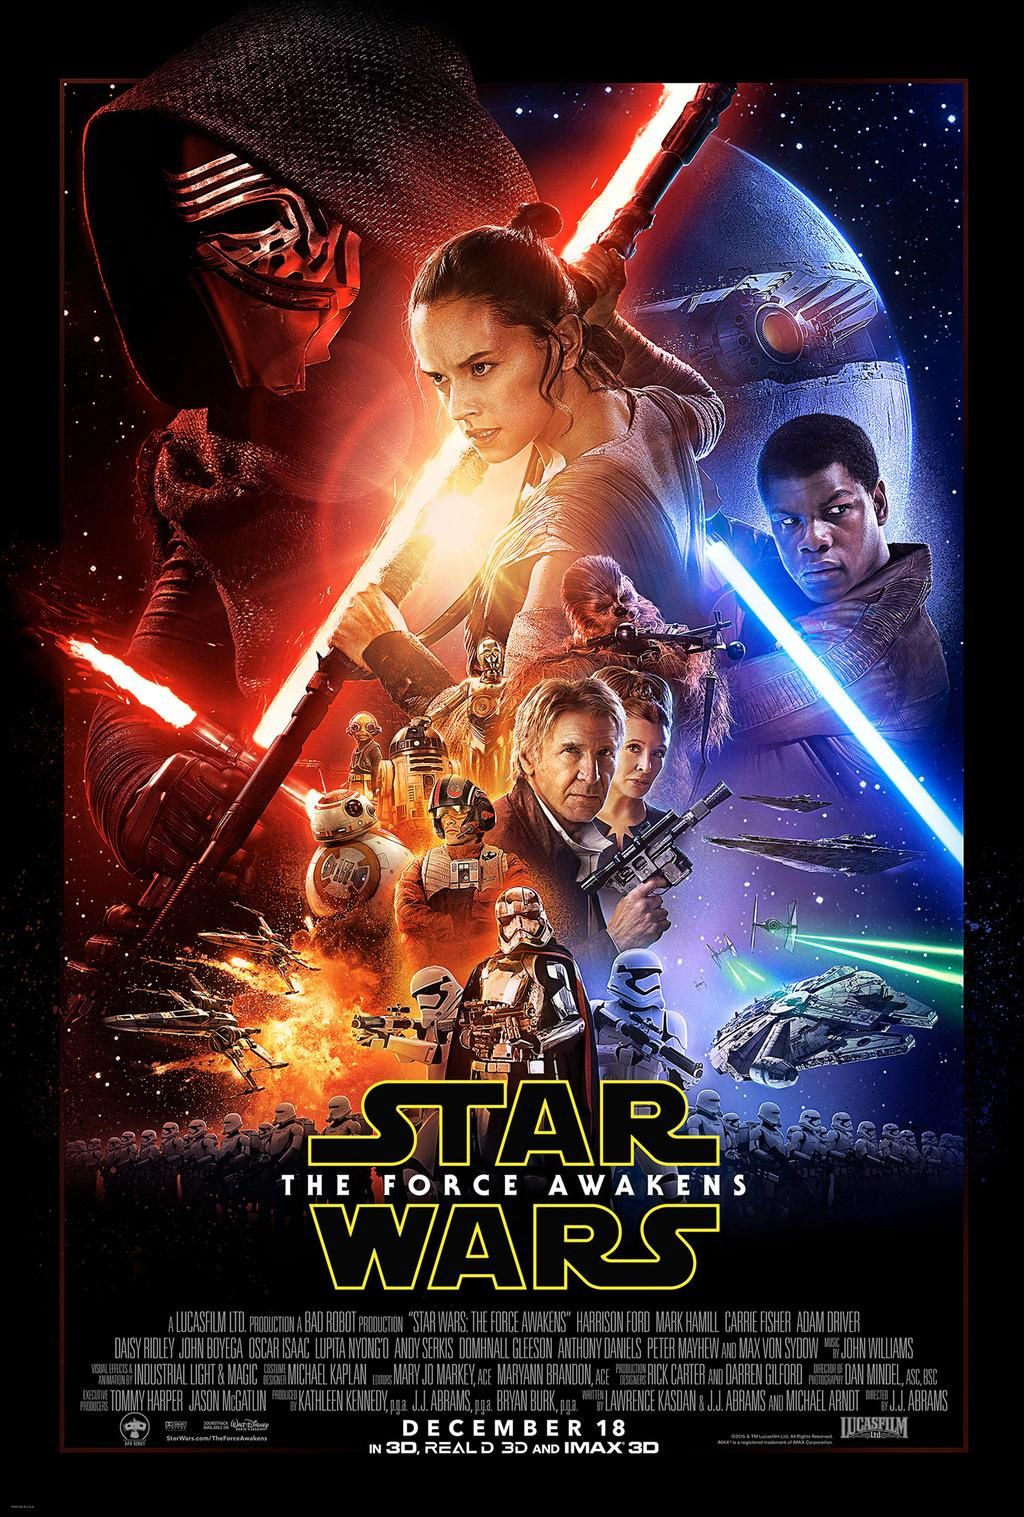 Voici l'affiche du film Star Wars : The Force Awakens.